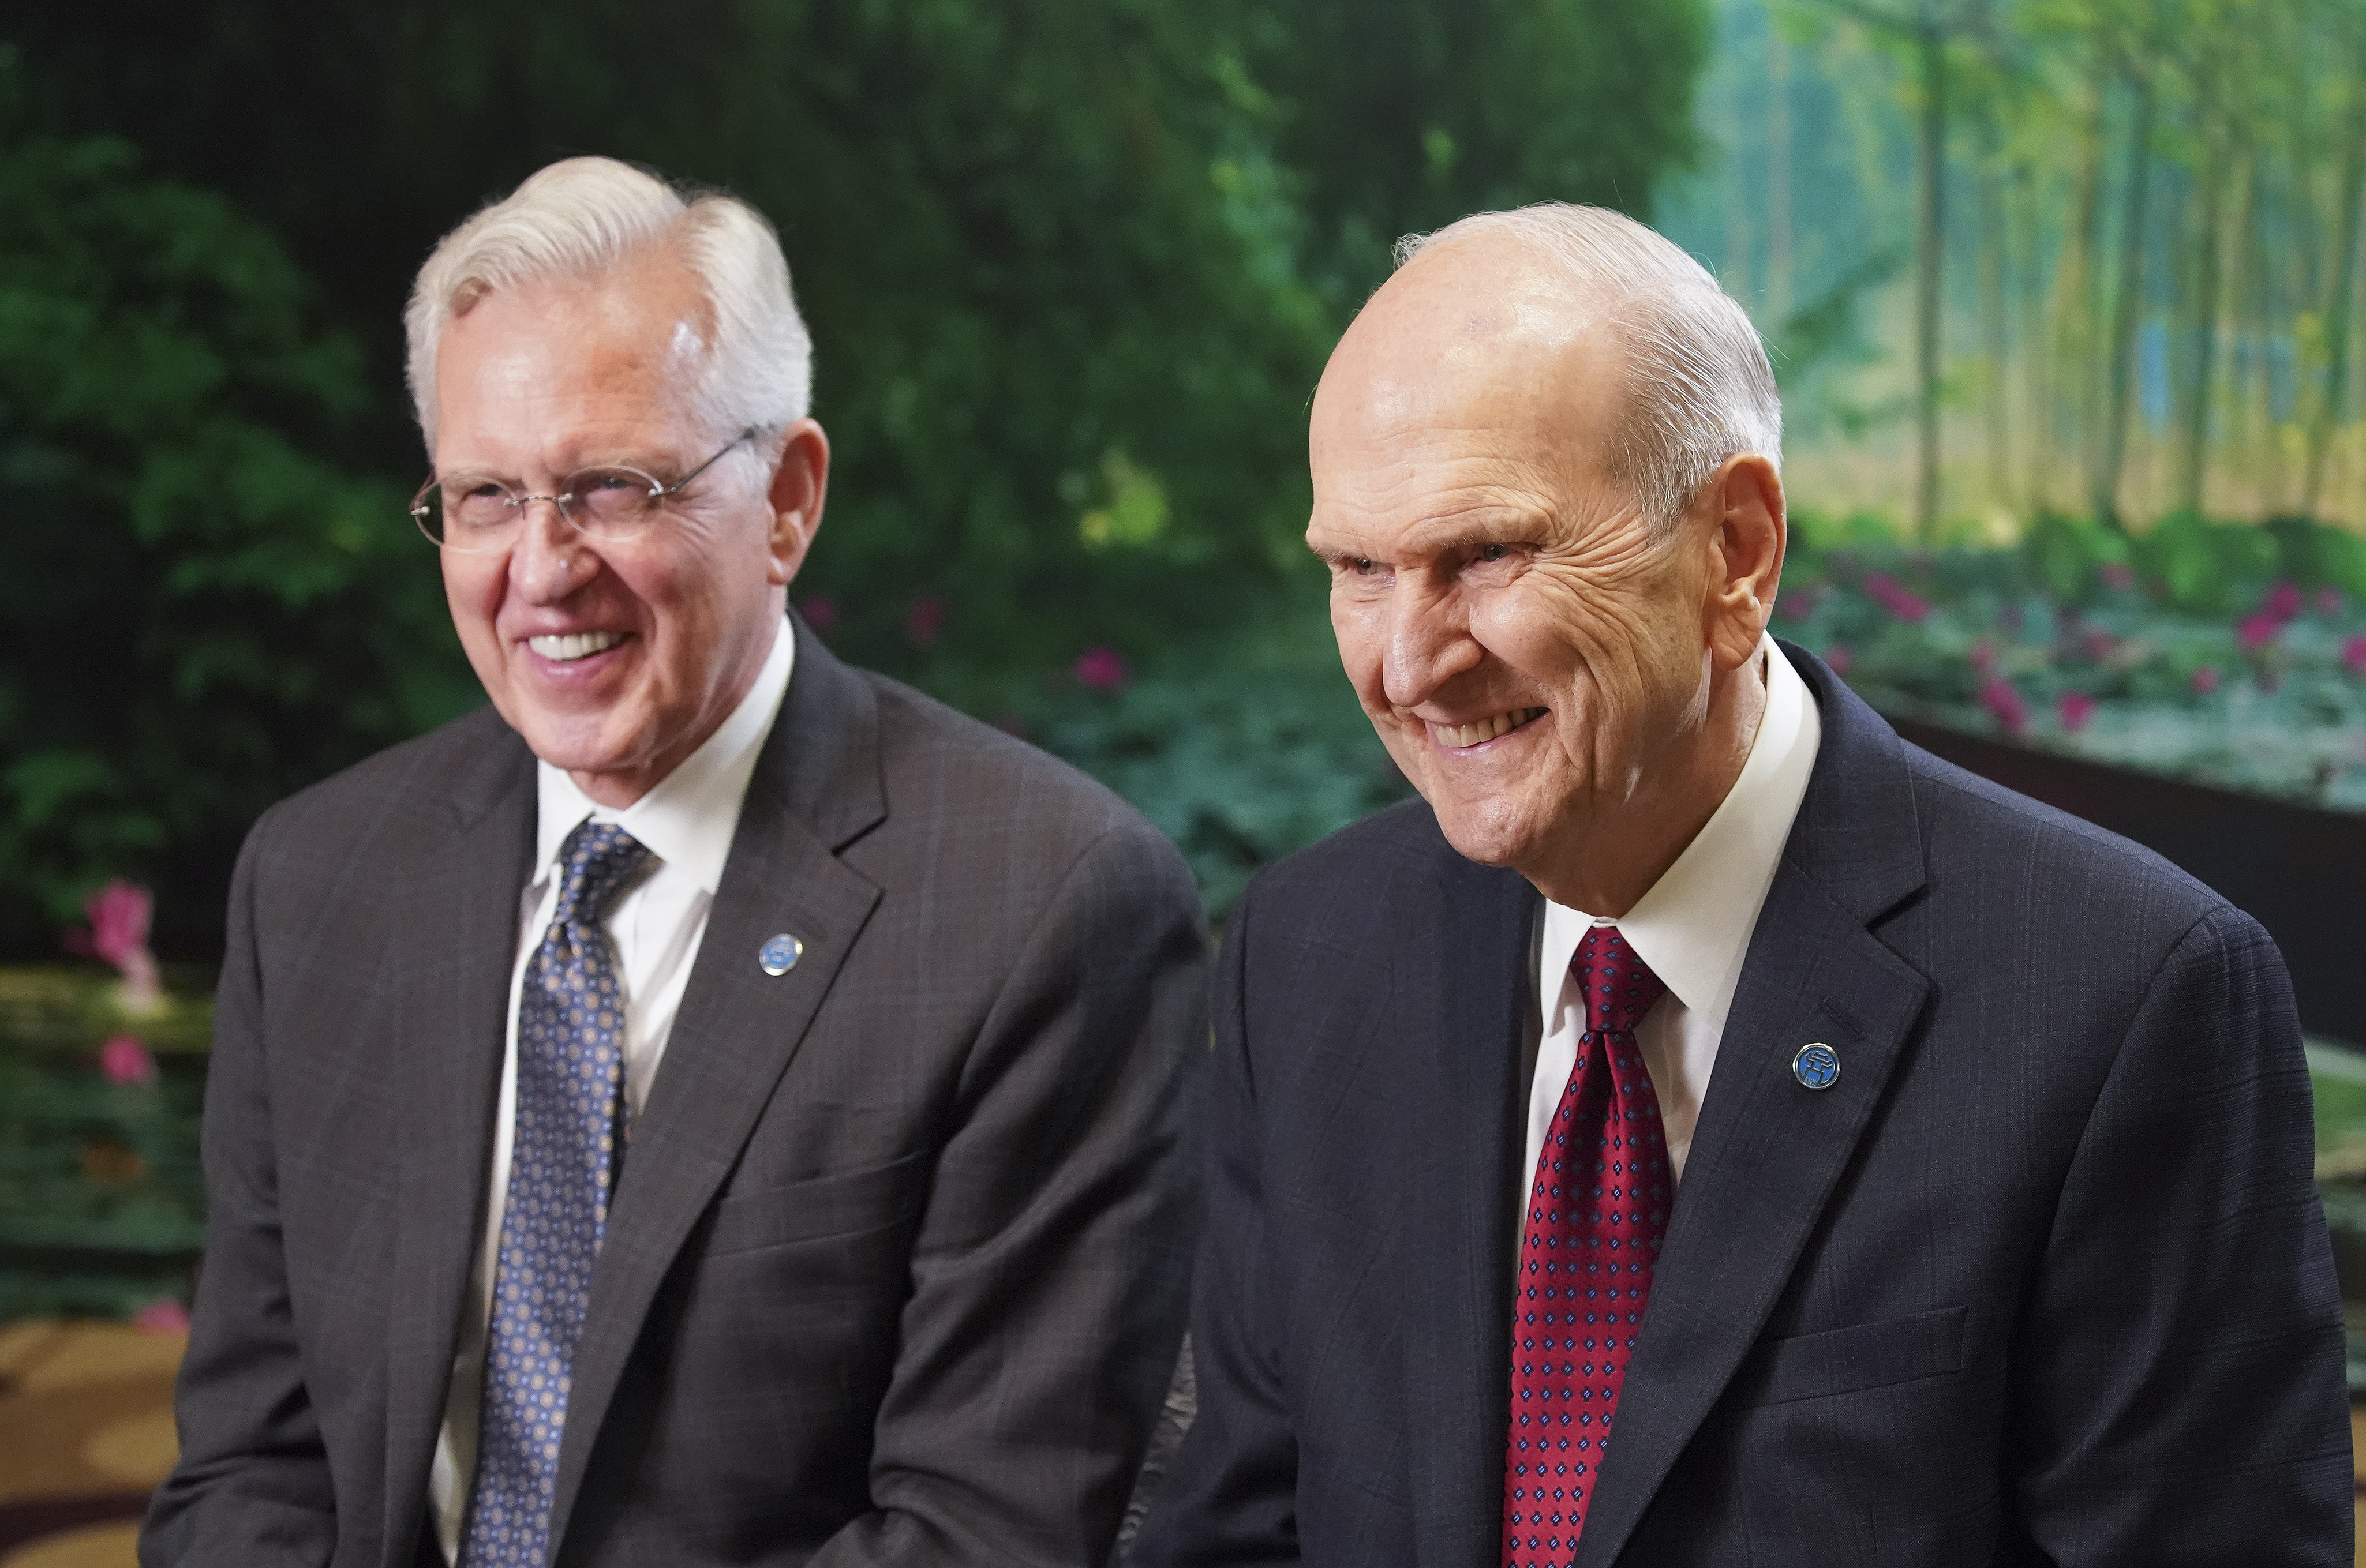 President Russell M. Nelson of The Church of Jesus Christ of Latter-day Saints, and Elder D. Todd Christofferson, of The Church of Jesus Christ of Latter-day Saints' Quorum of the Twelve Apostles, sit together in Hanoi, Vietnam on Sunday, Nov. 17, 2019.